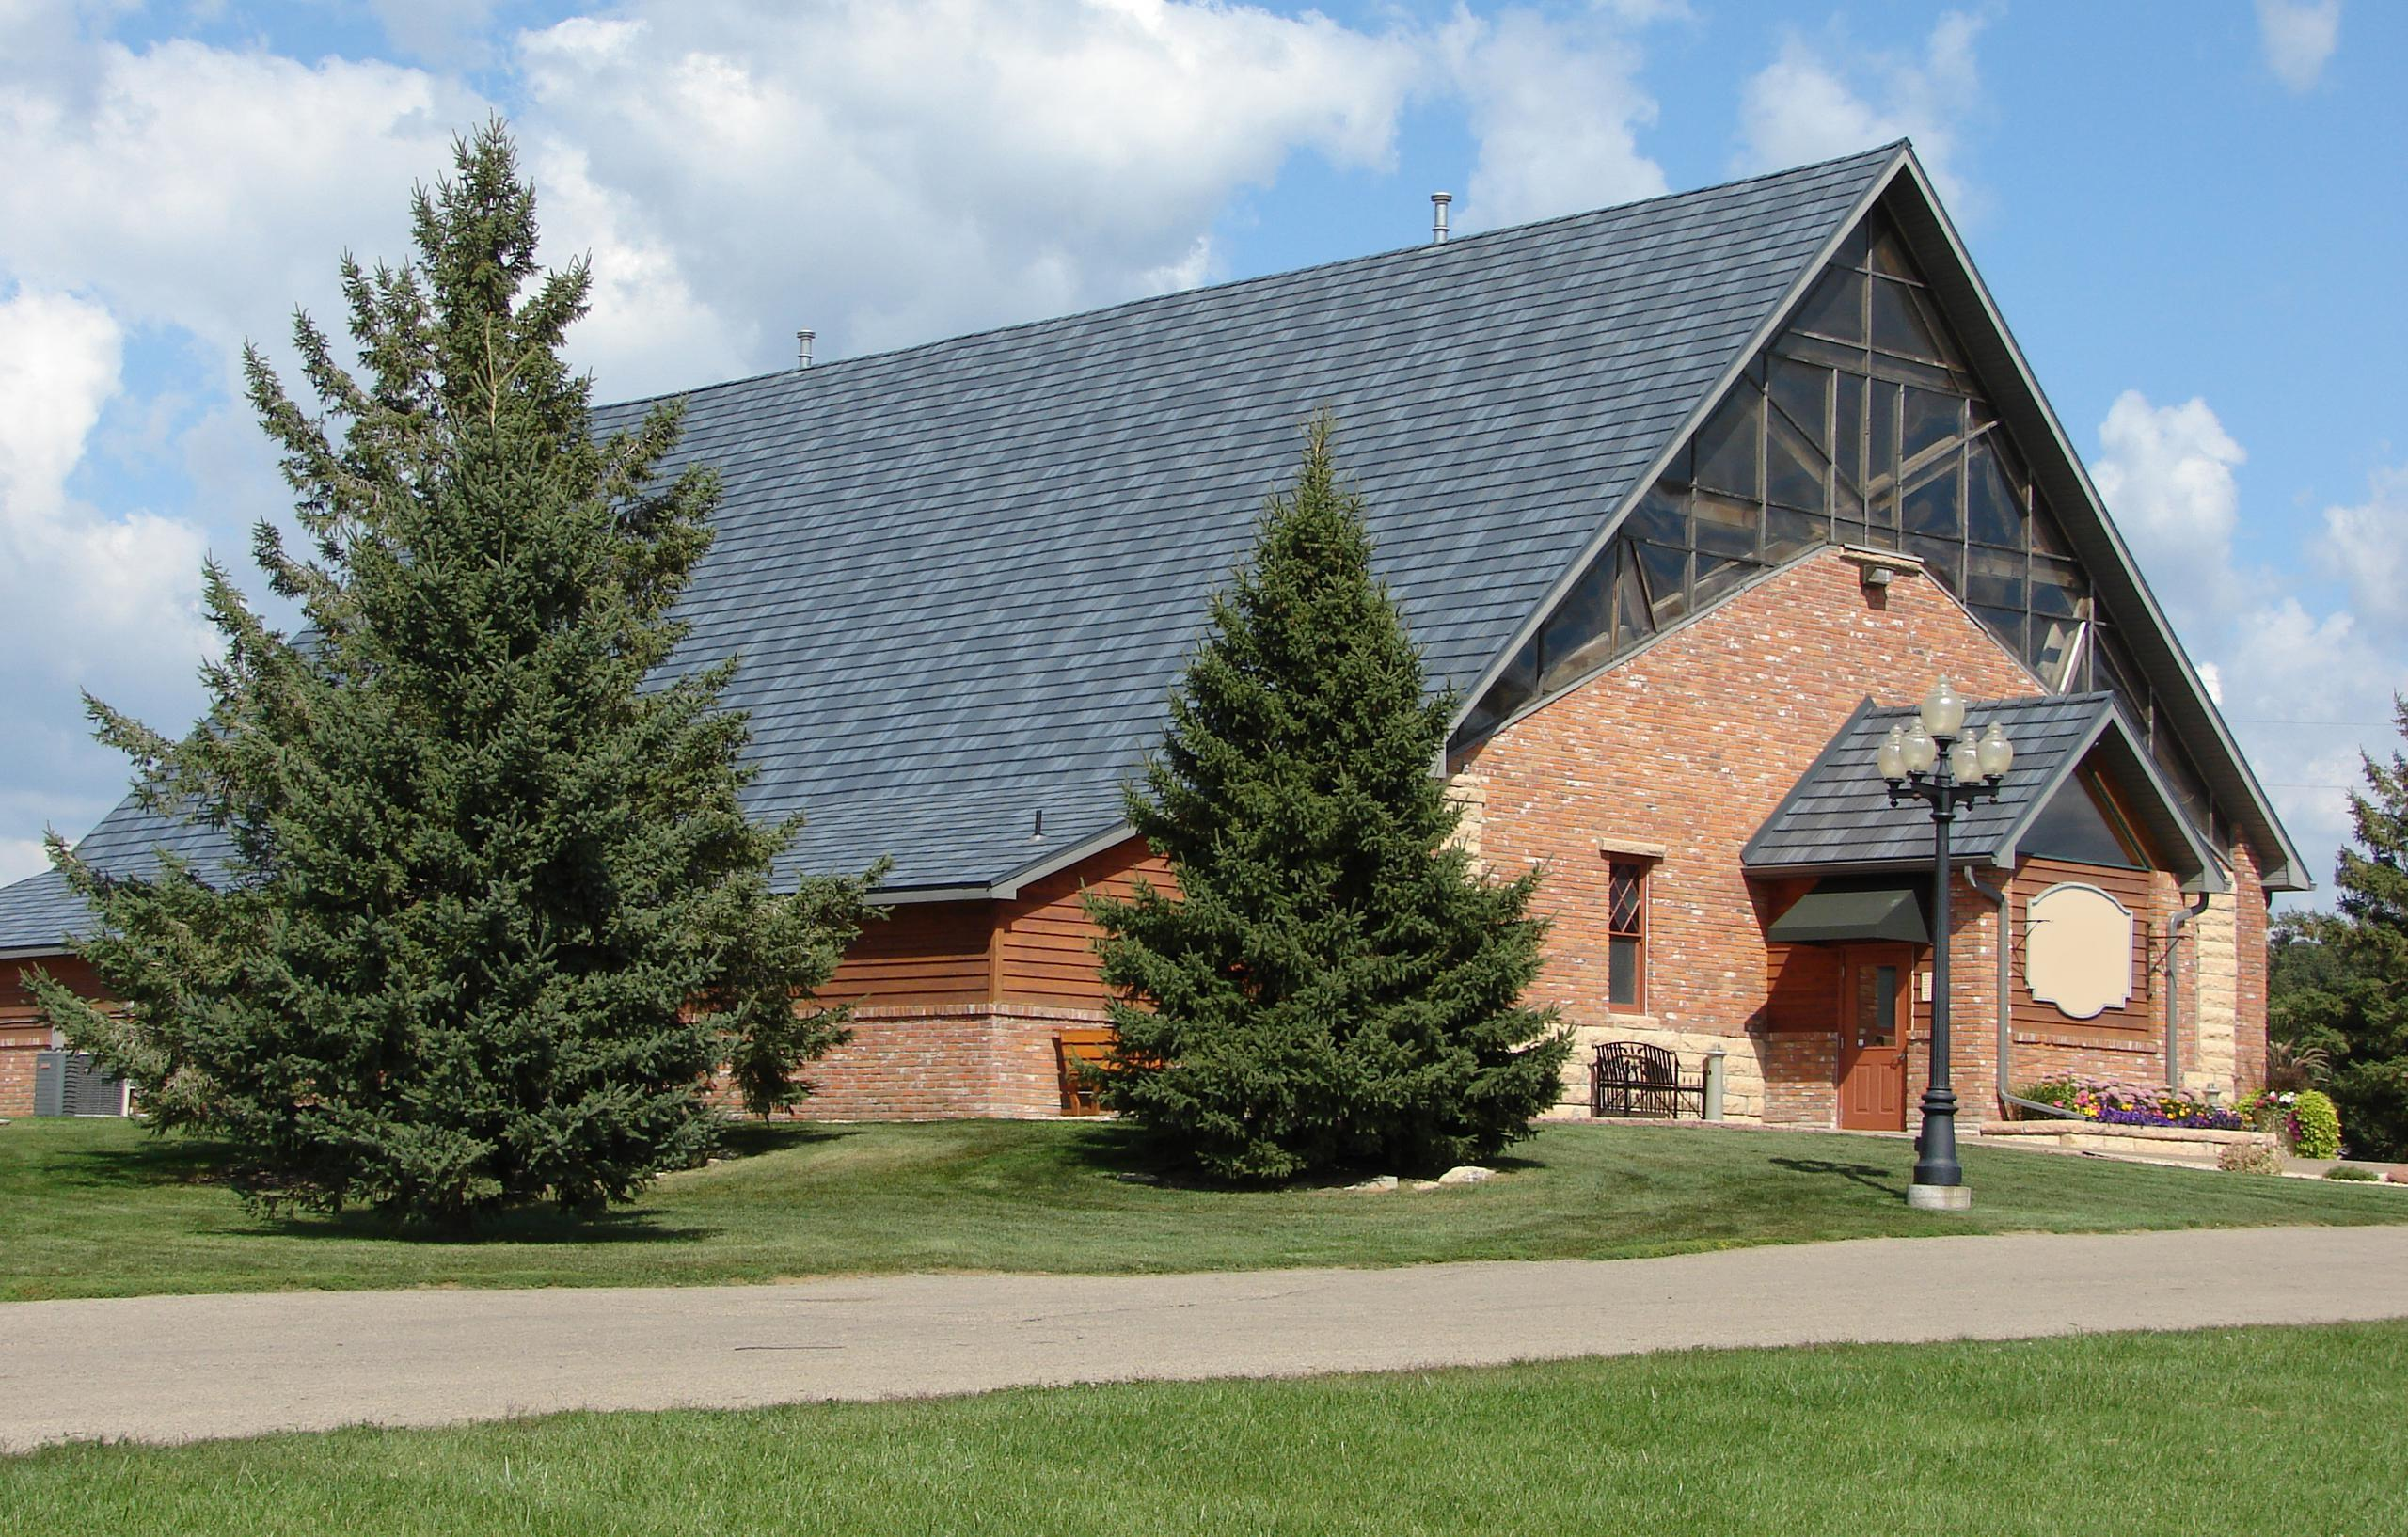 Architectural appeal was added to this charming church building when the EDCO Arrowline Slate Stone Blend Roofing was installed.